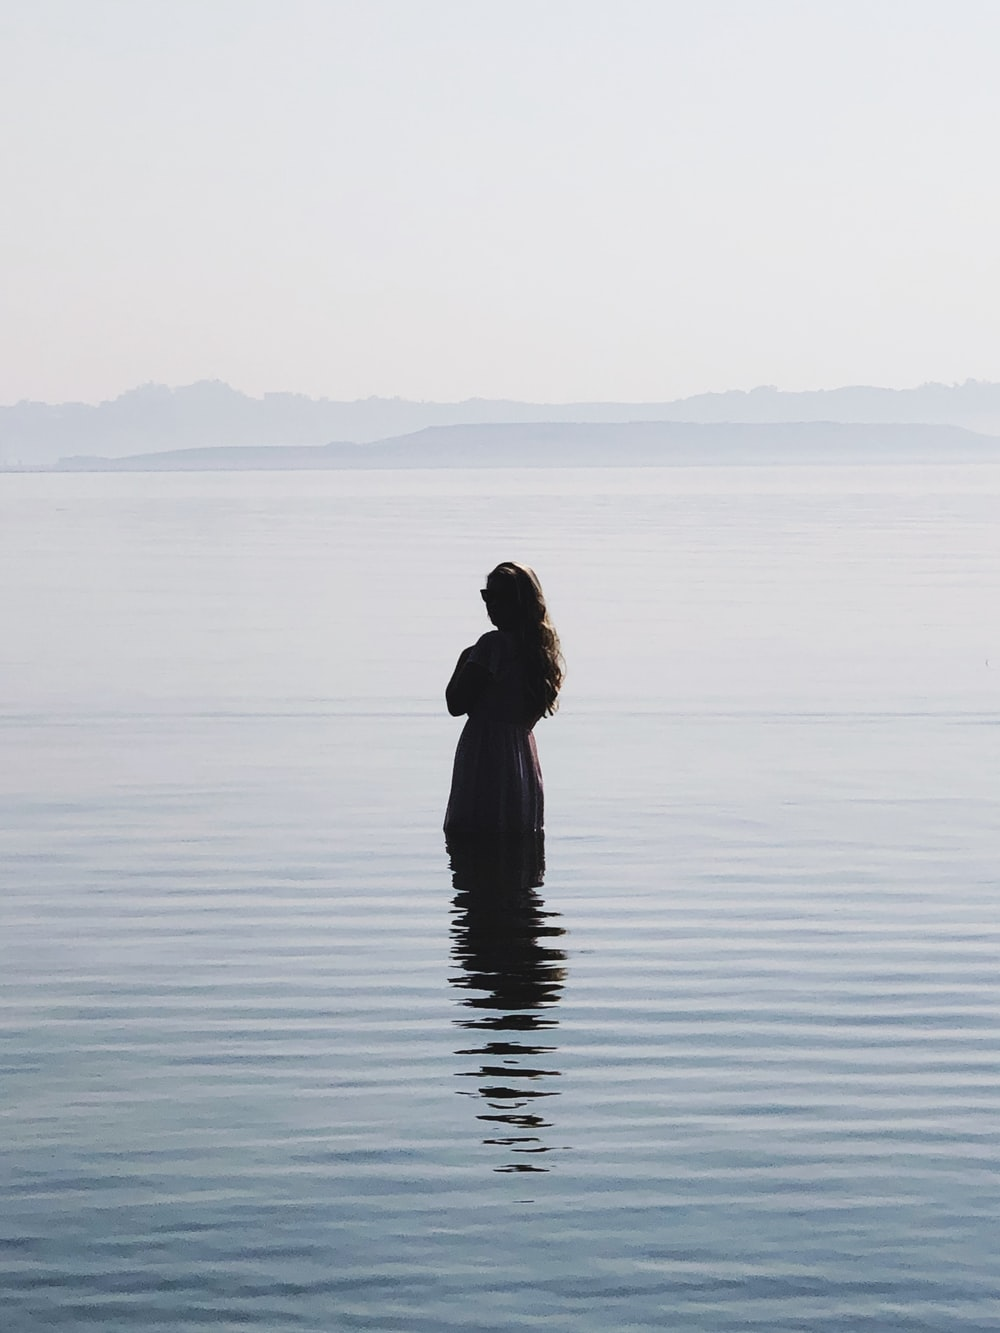 woman in black dress standing on water during daytime